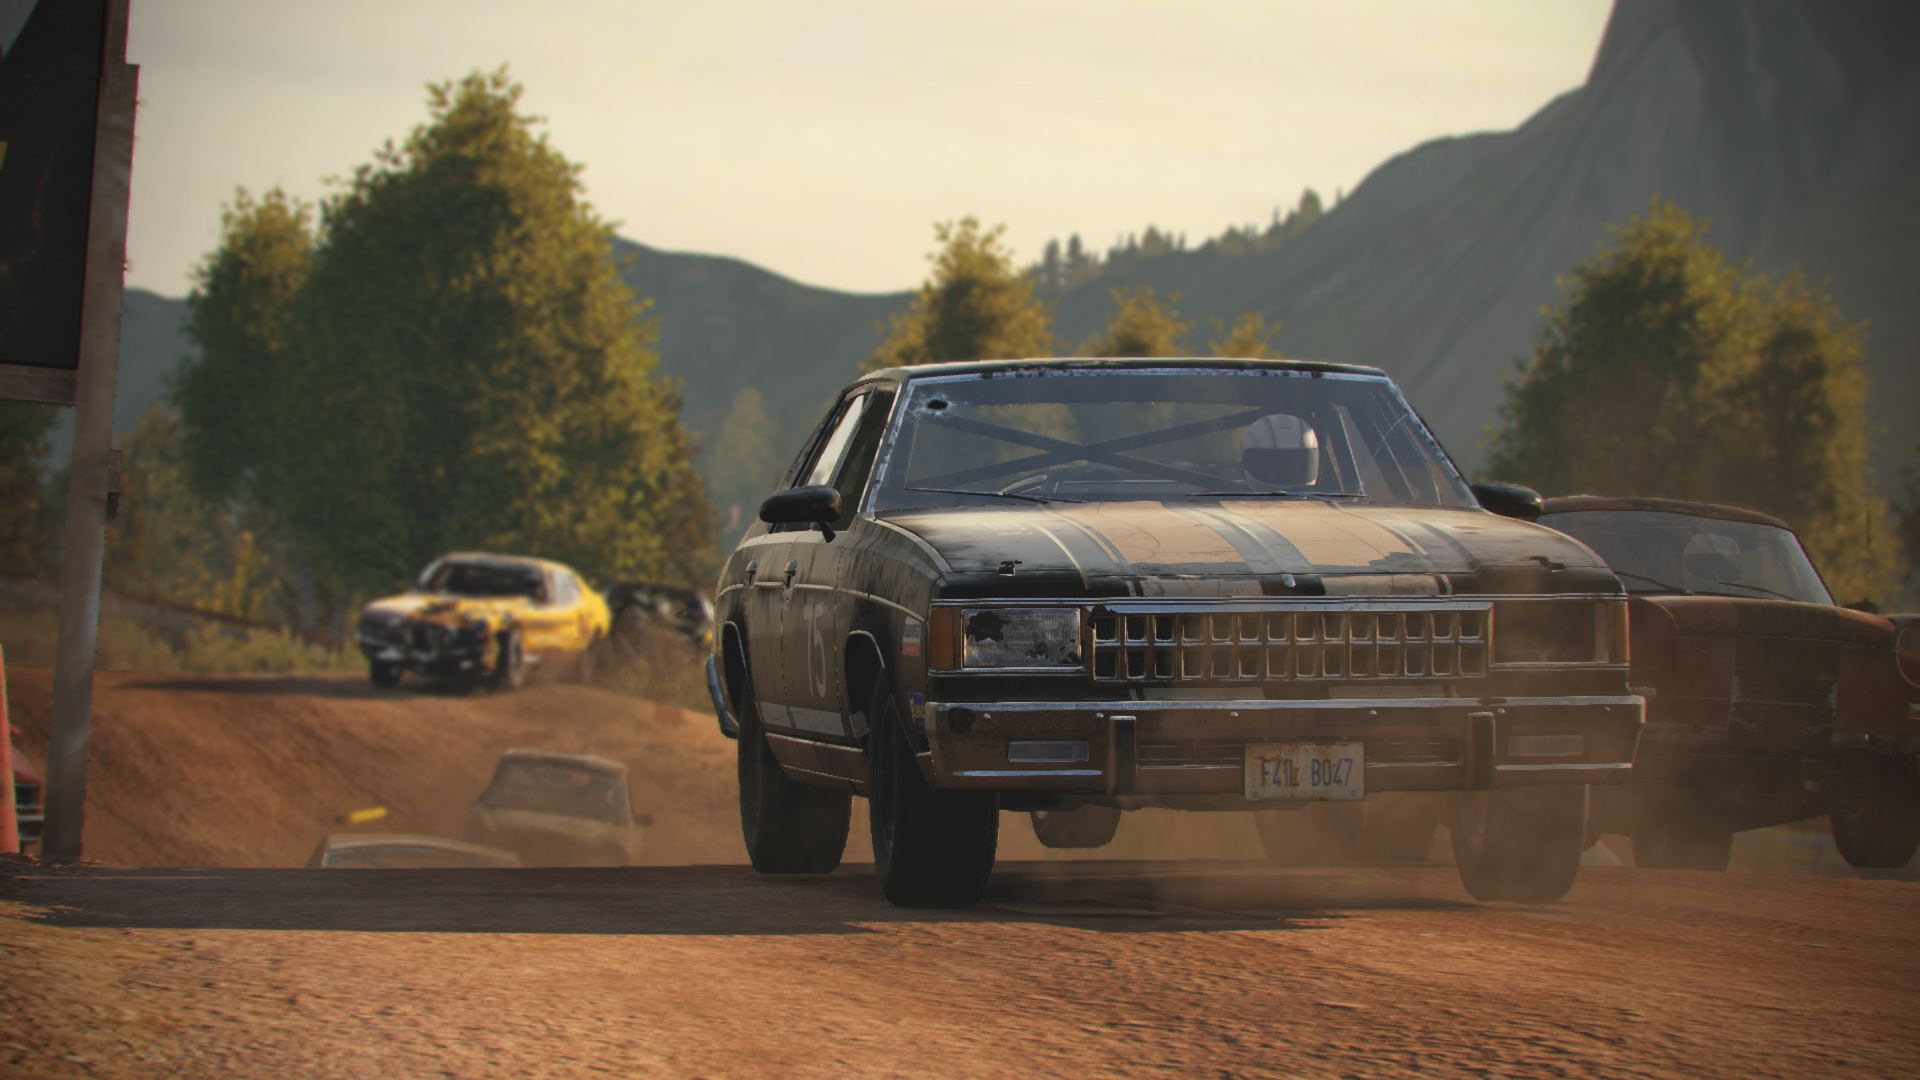 Next Car Game Wreckfest Update - 25.5.16.jpg